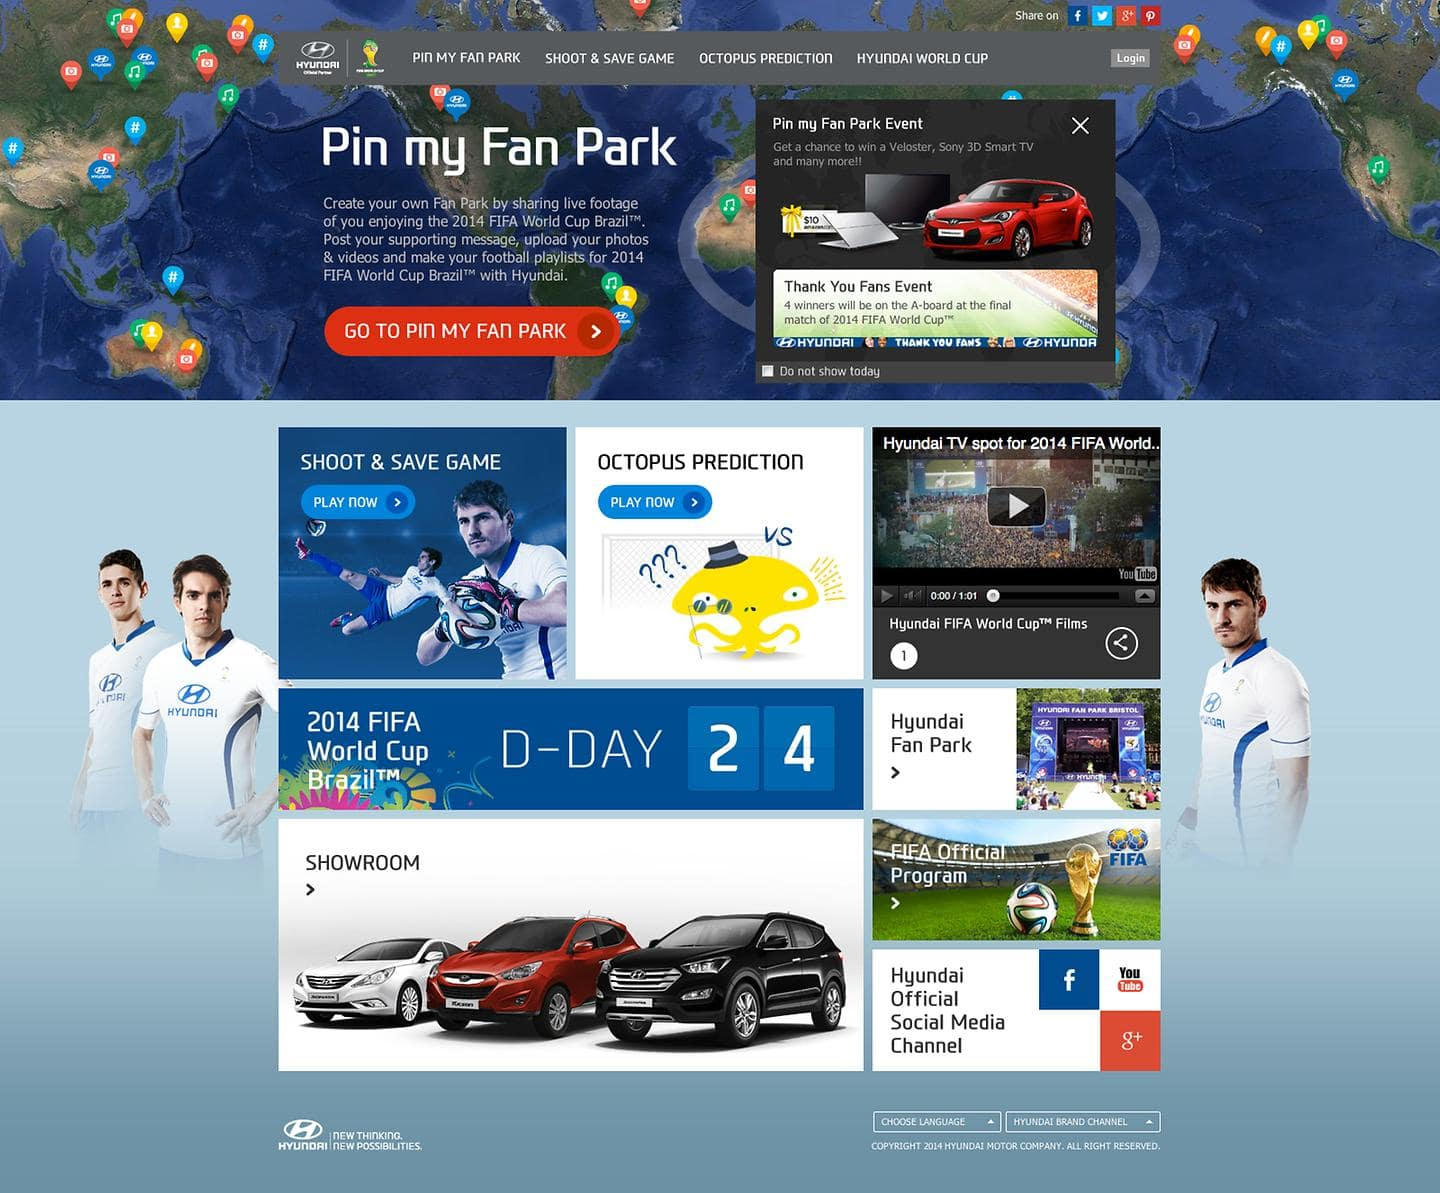 The Hyundai World Cup microsite opens facilitate global participation